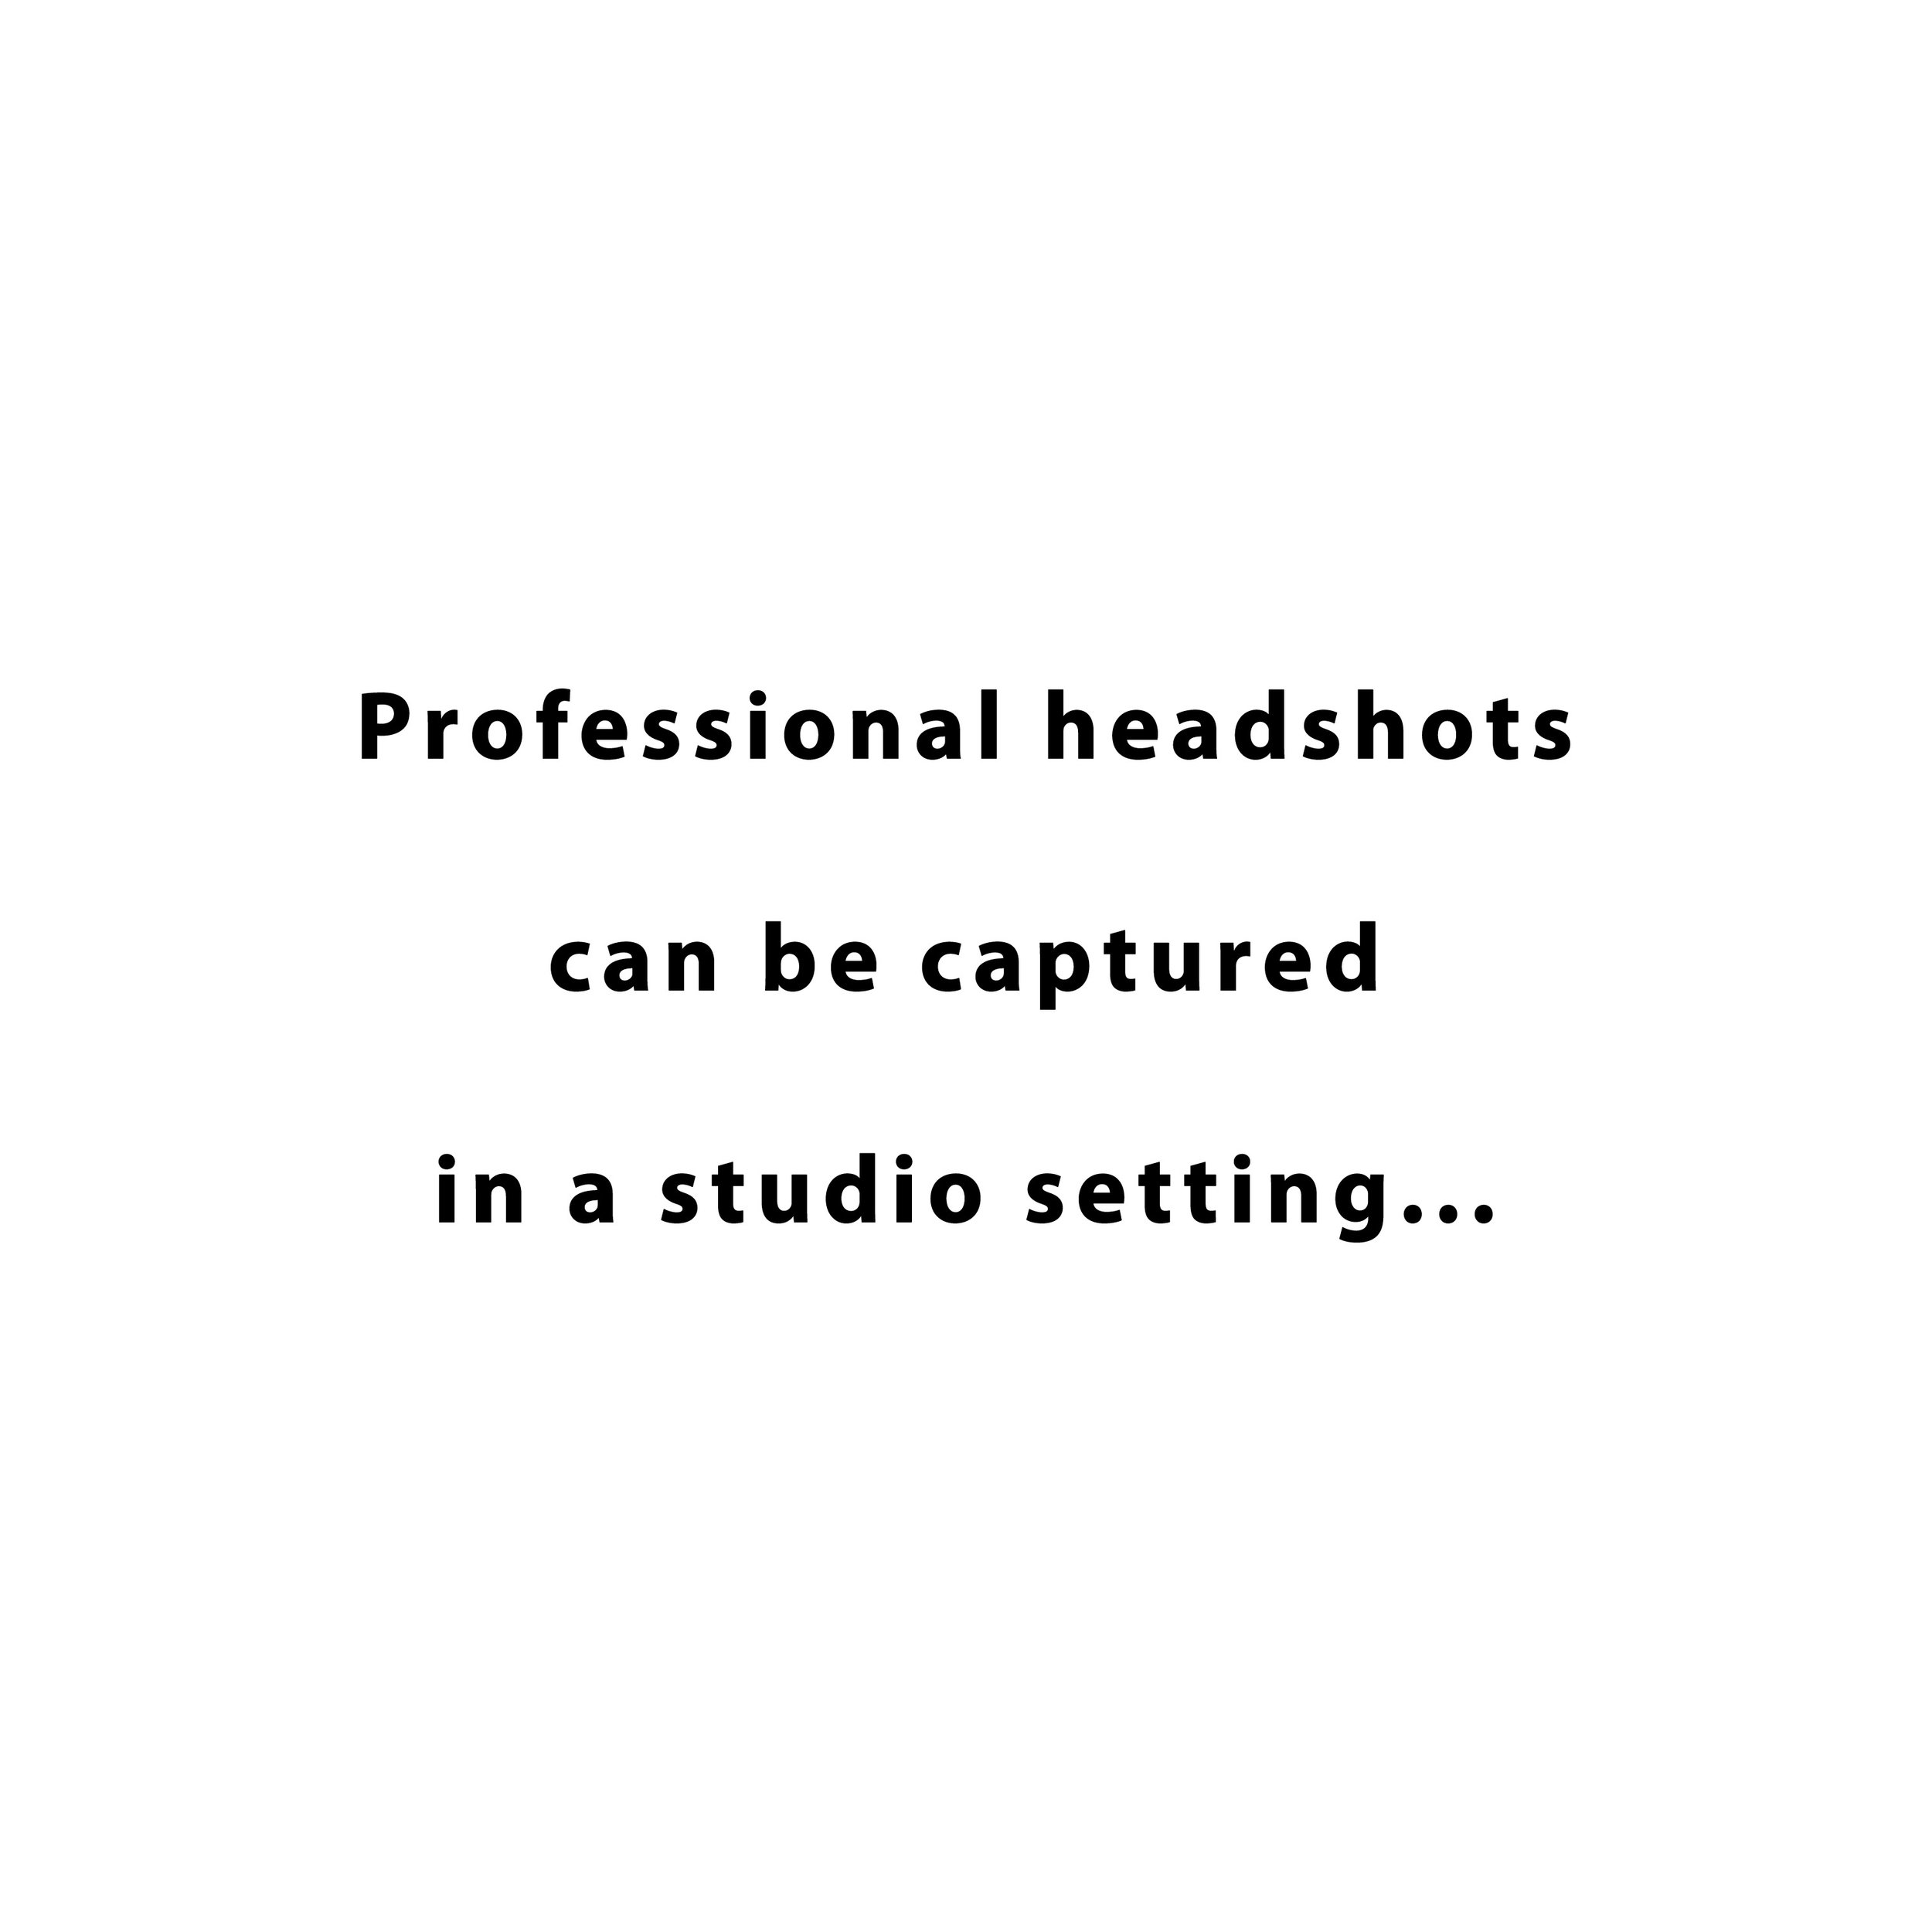 Headshots-Slide5 copy.jpg